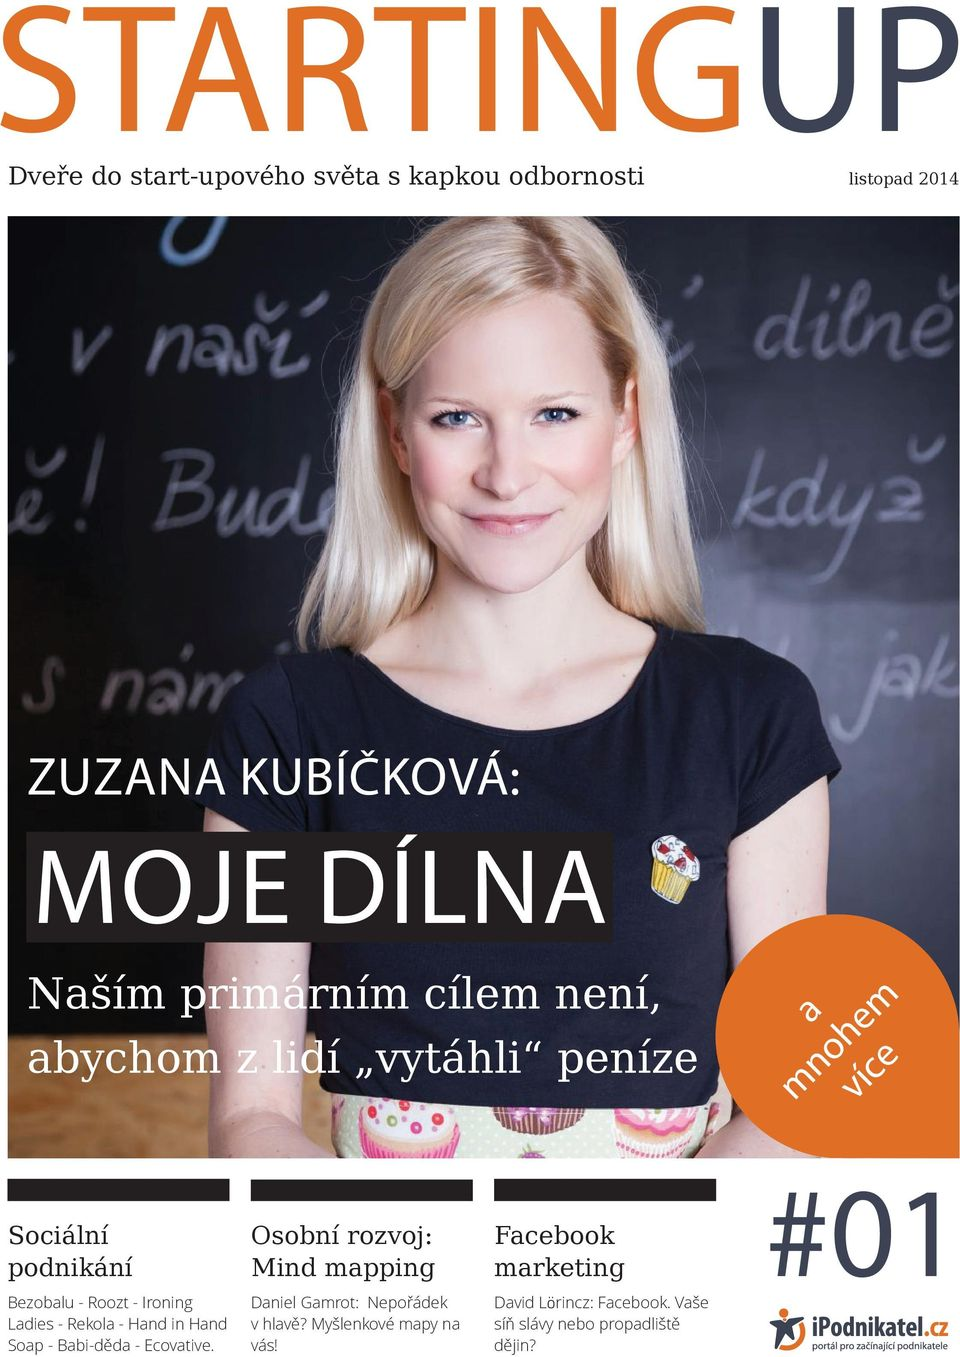 Facebook marketing #01 Bezobalu - Roozt - Ironing Ladies - Rekola - Hand in Hand Soap - Babi-děda - Ecovative.